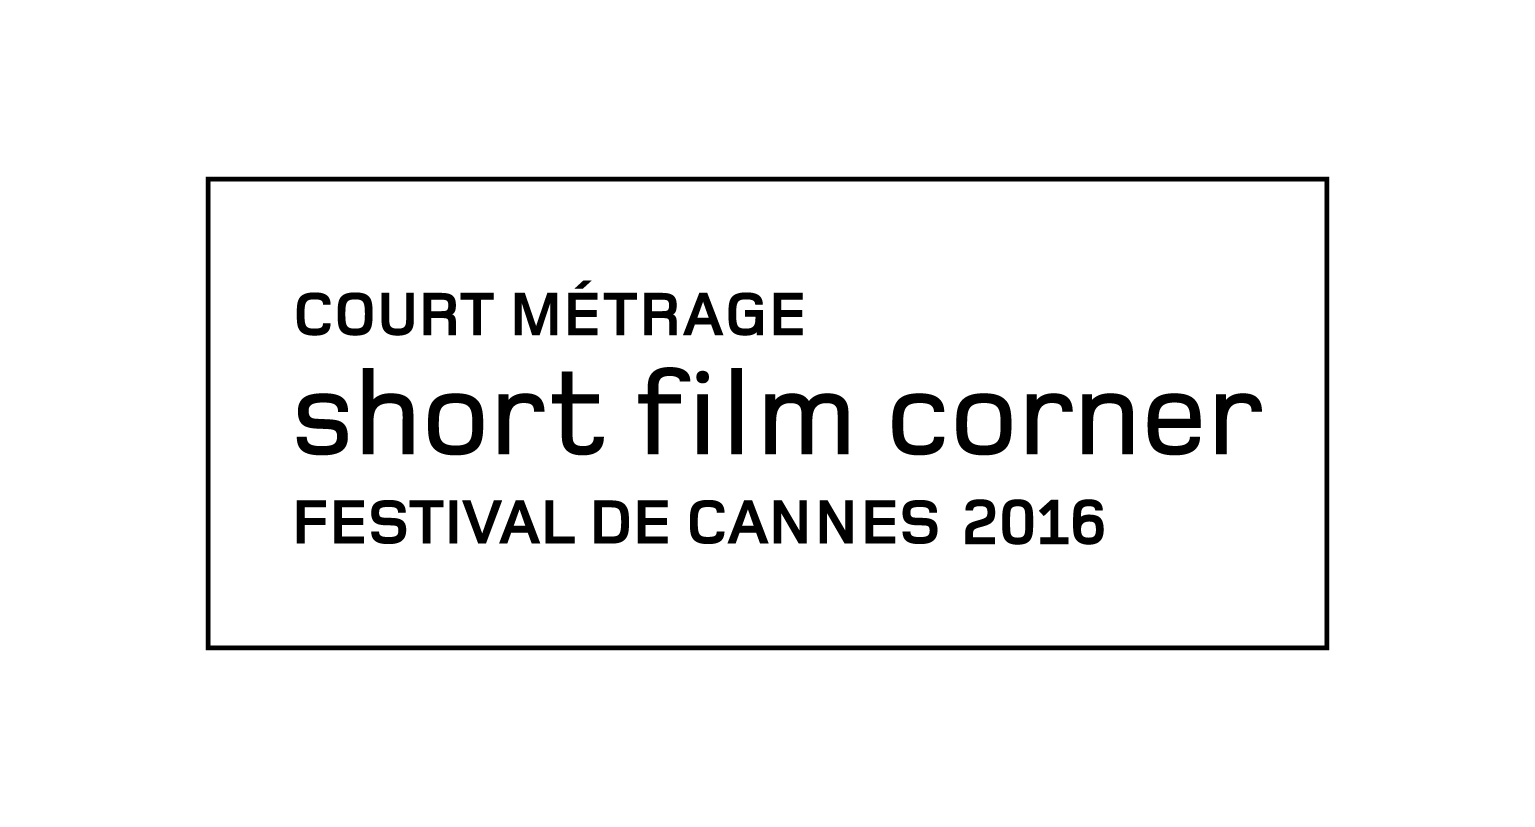 Cannes_Short_Film_Corner.jpg